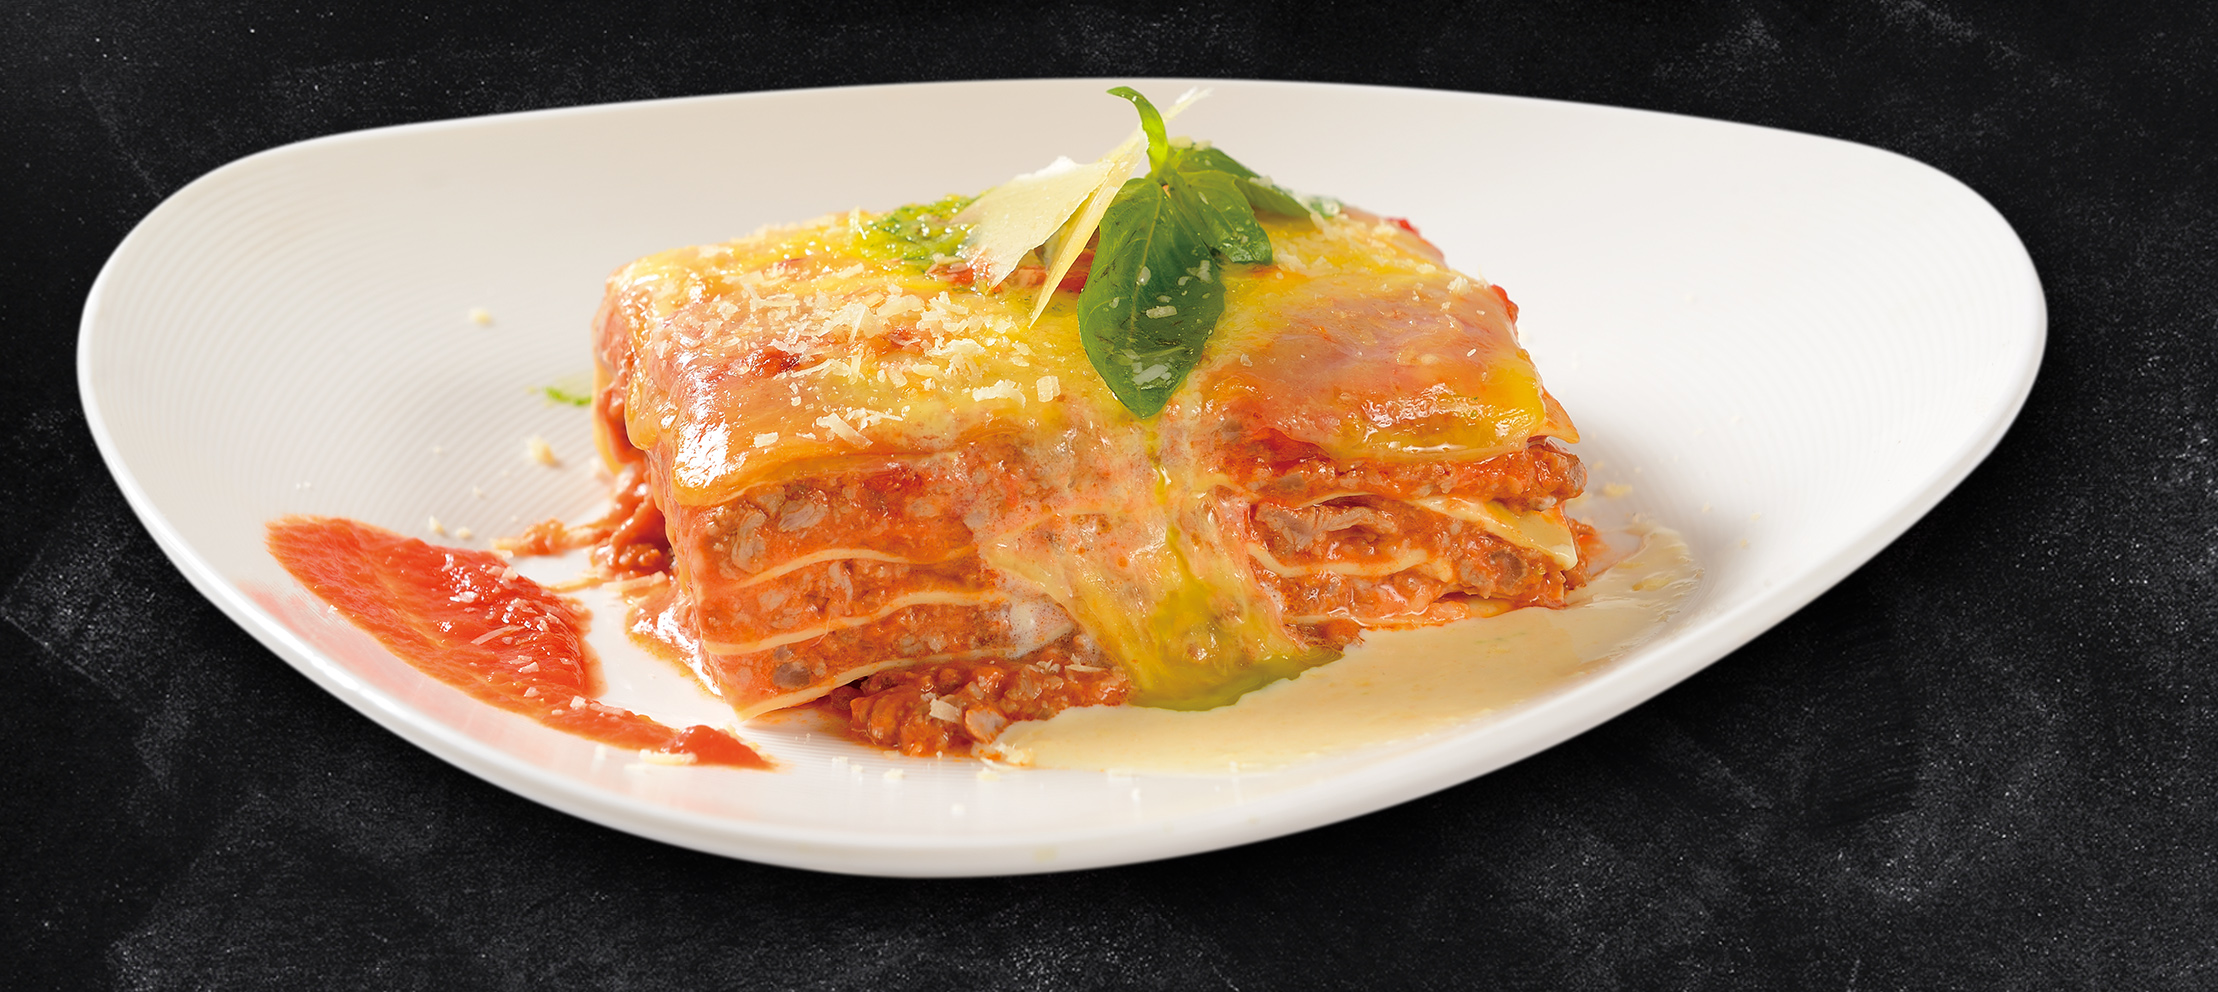 <b>Beef Lasagna Smothered in Meat Sauce and Mozzarella Cheese</b><br/>A northern Italian Favorite! Lasagna layered